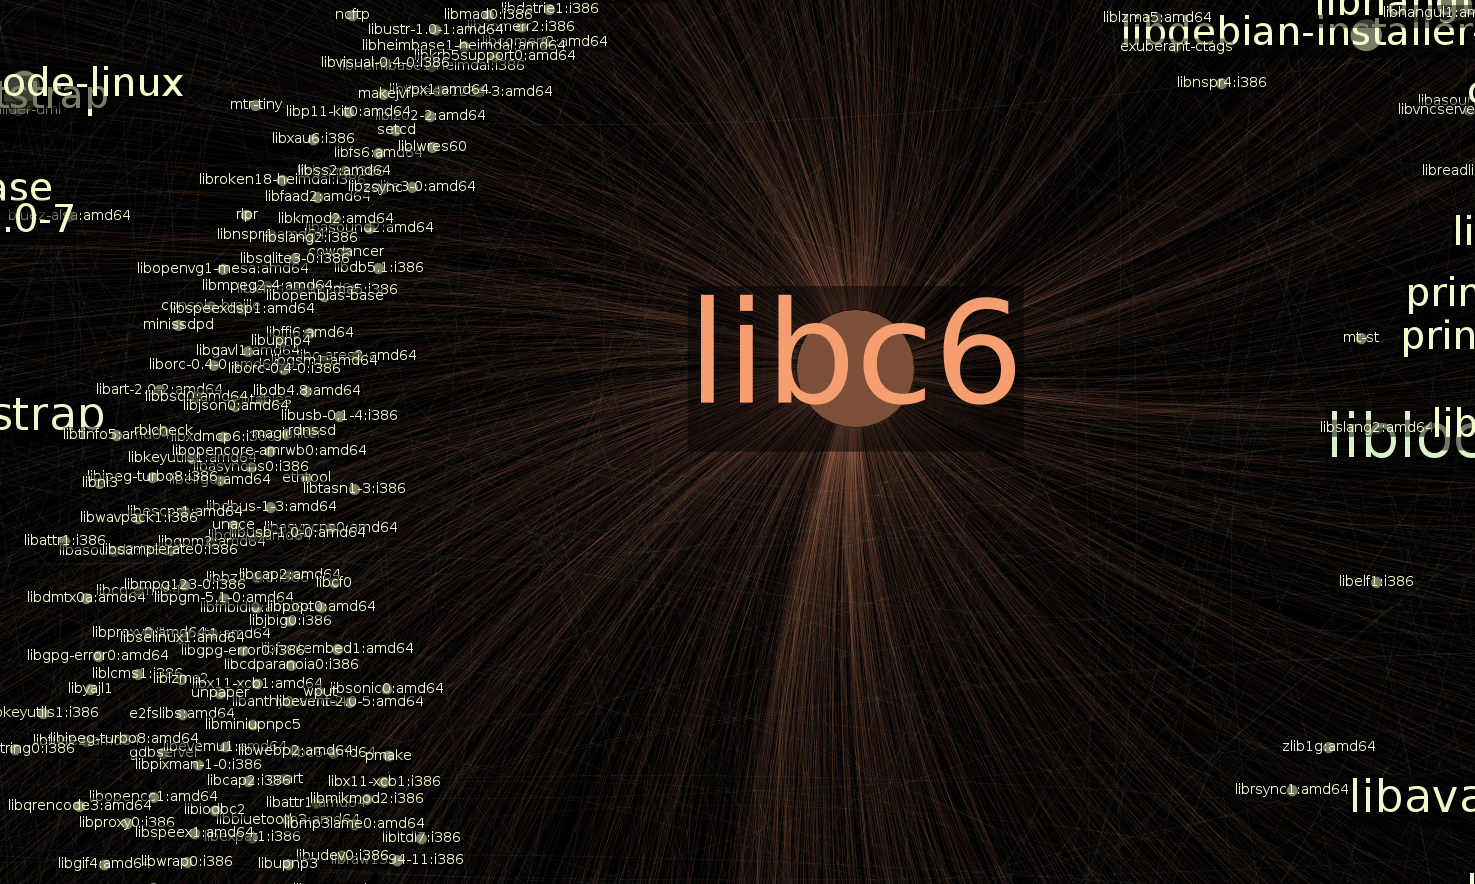 visualisation des relations de libc6